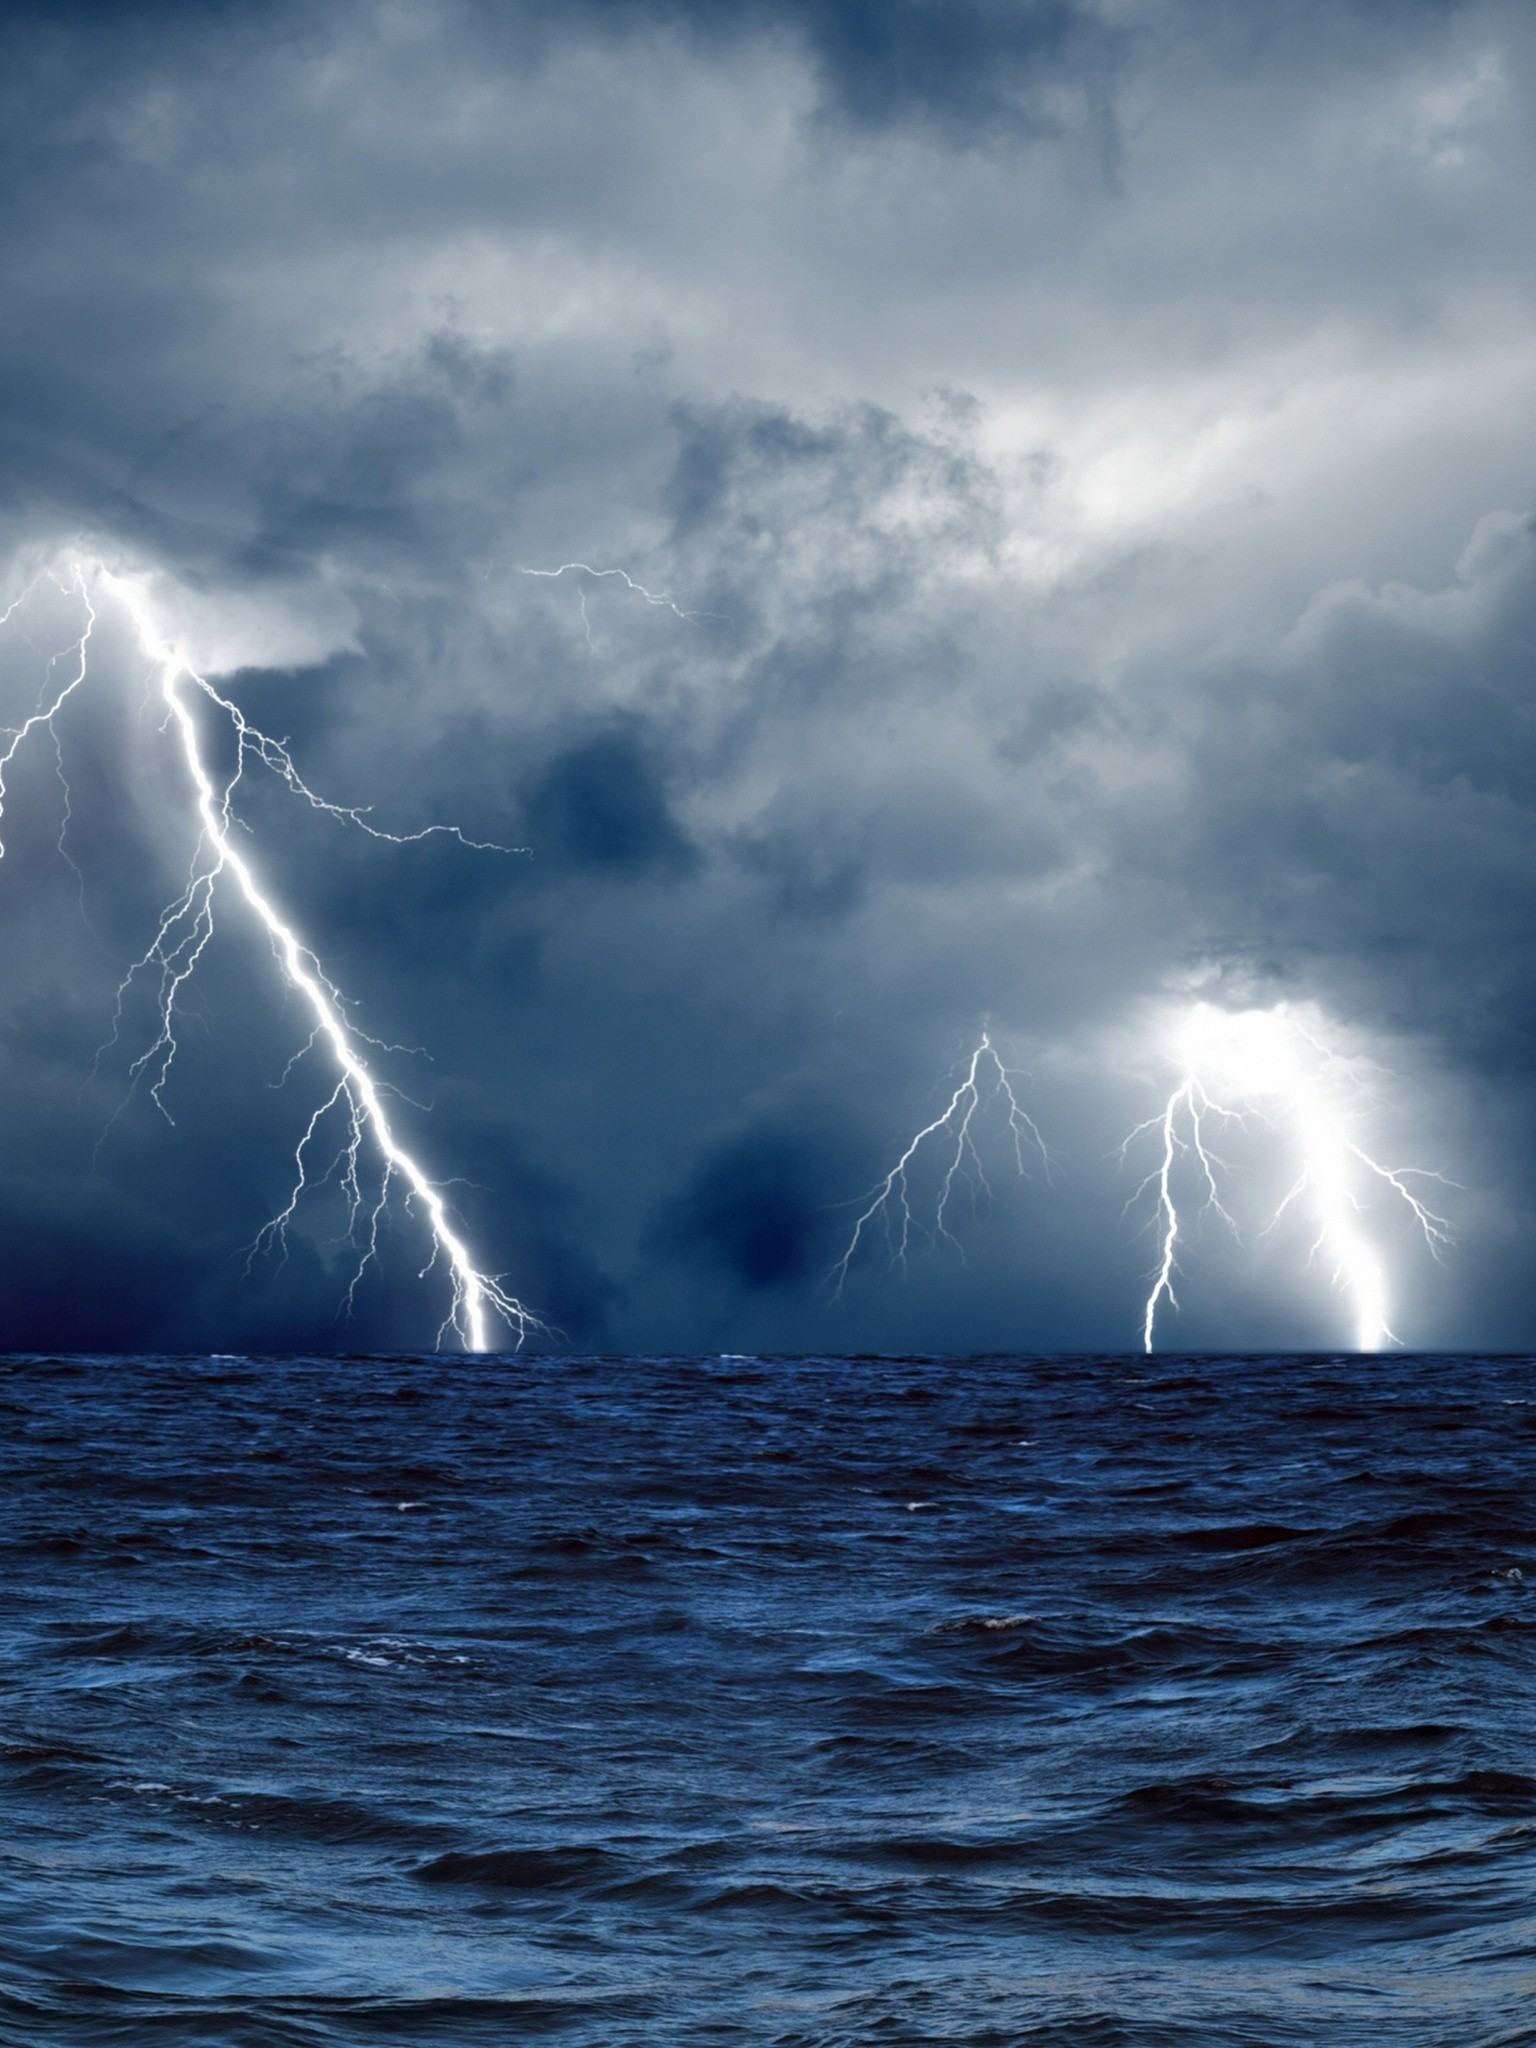 Clouds waves sea storm lightning wallpaper 1536x2048 voltagebd Image collections